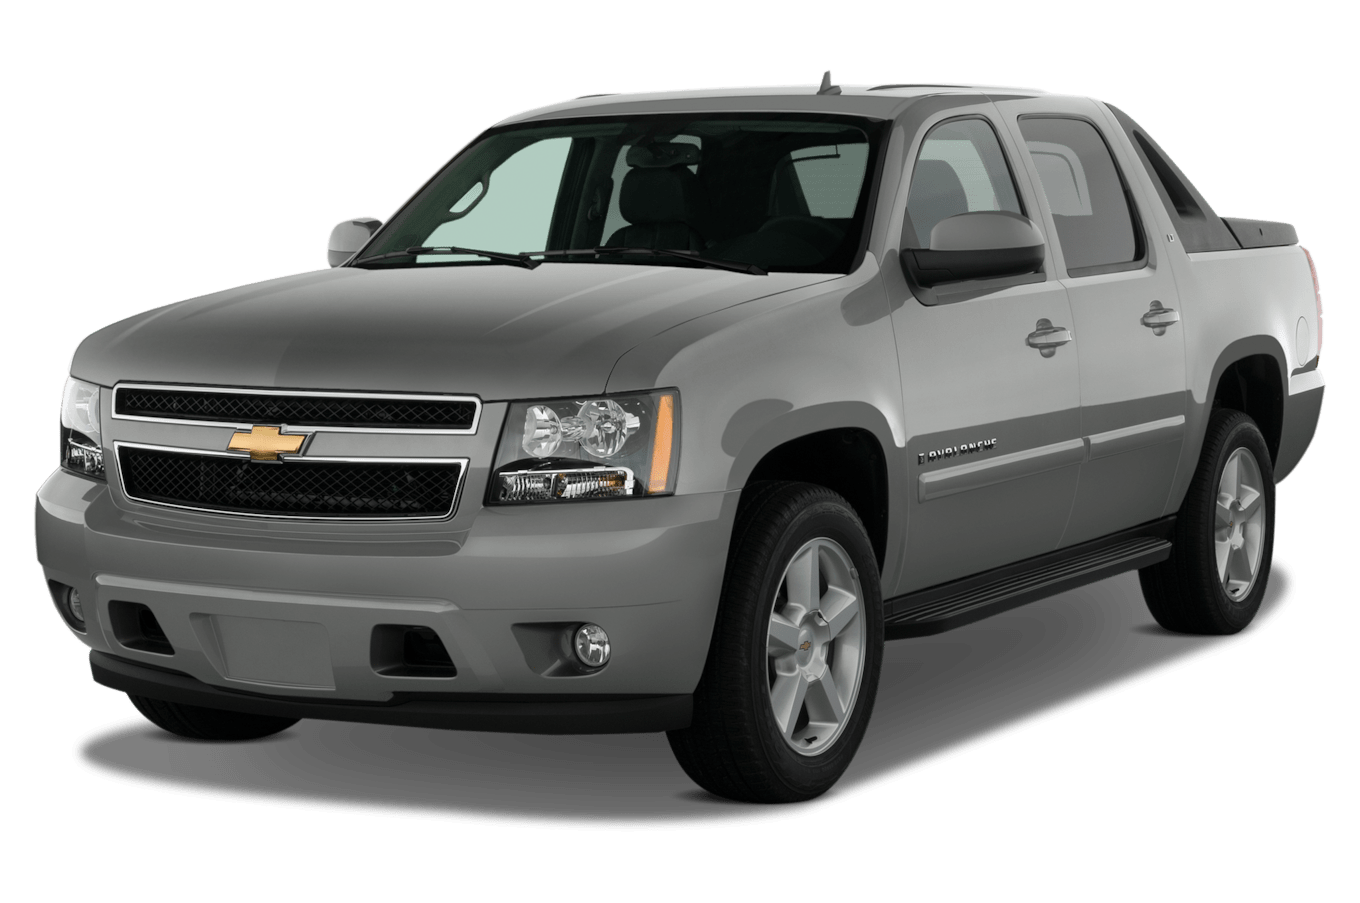 medium resolution of chevrolet avalanche trailer plug wiring wiring diagram new 2011 chevrolet avalanche reviews research avalanche prices